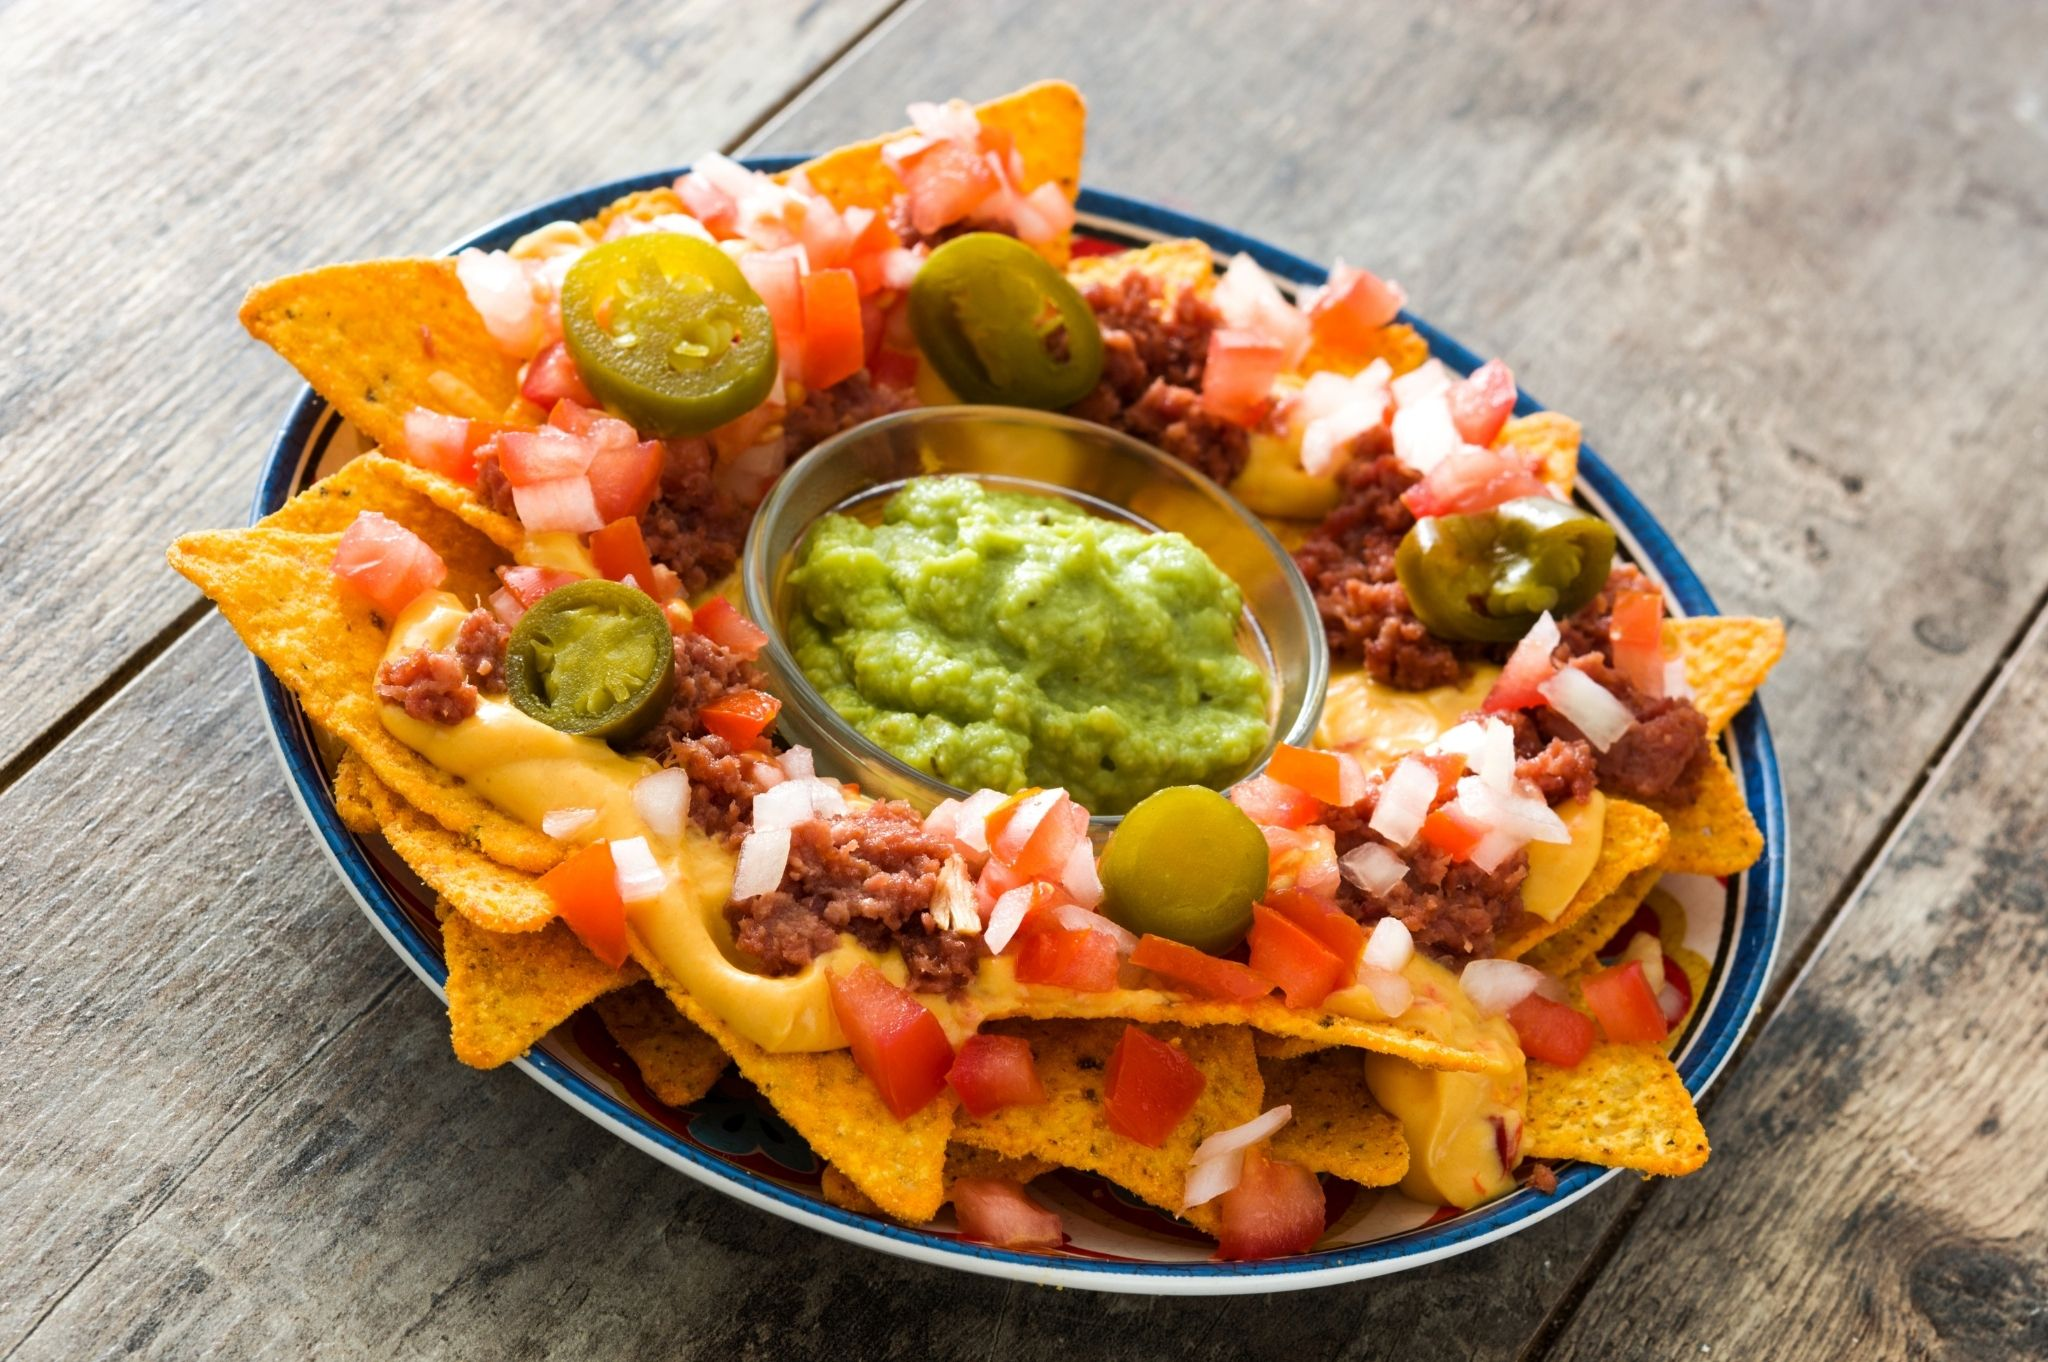 Image of a plate of nachos and guacamole